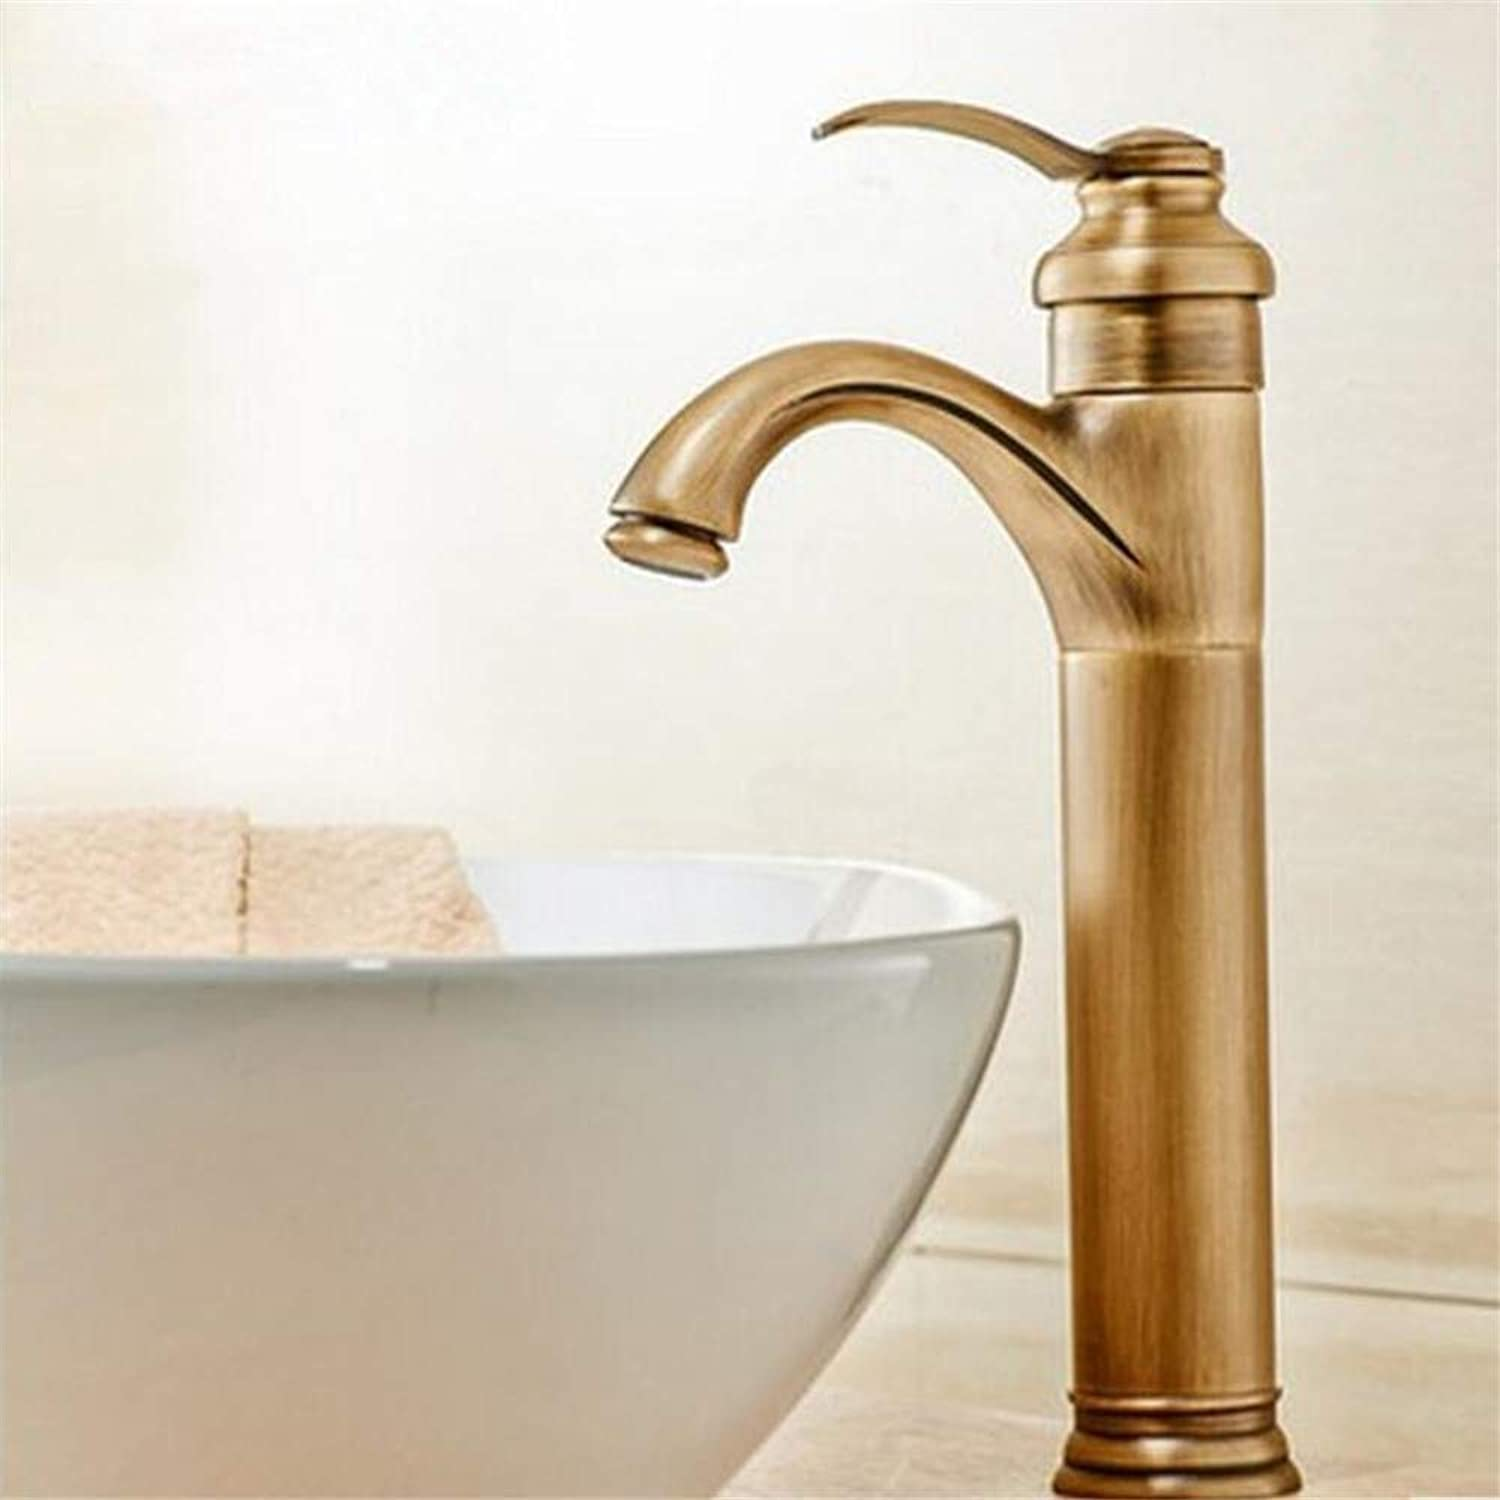 360° redating Faucet Retro Faucetcold Water Faucet Heightening Single Hole Above Counter Basin Faucet Retro Faucet